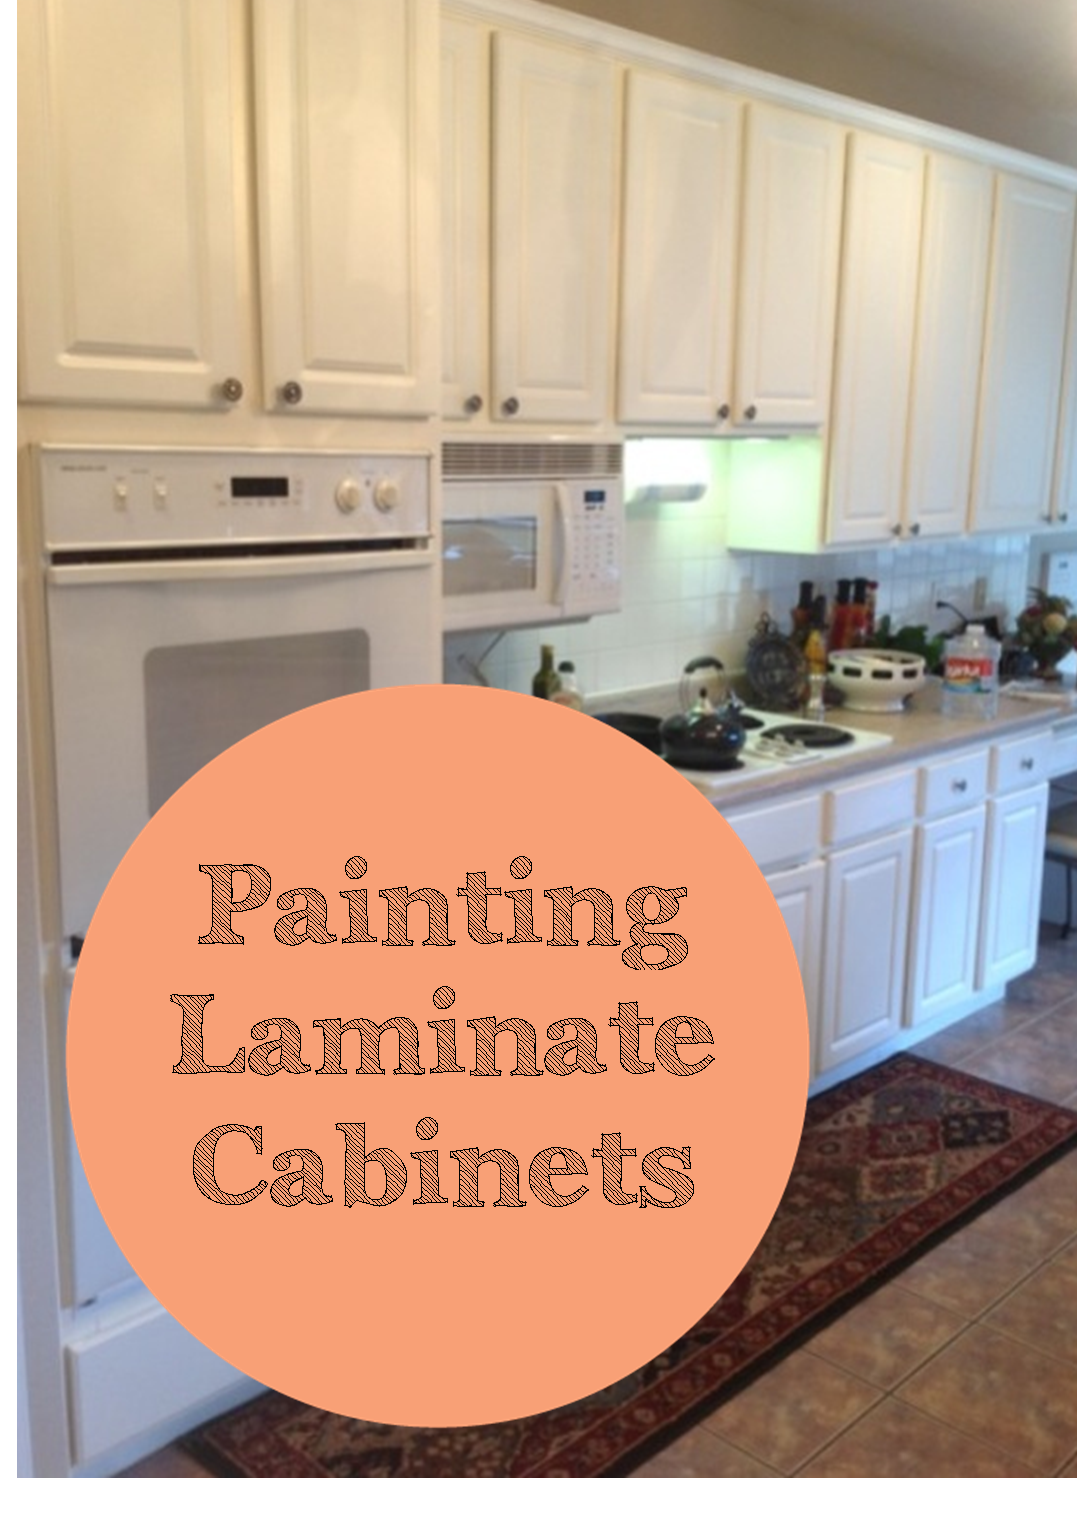 Laminated cabinets if you have laminated cabinets you for Kitchen cabinets laminate